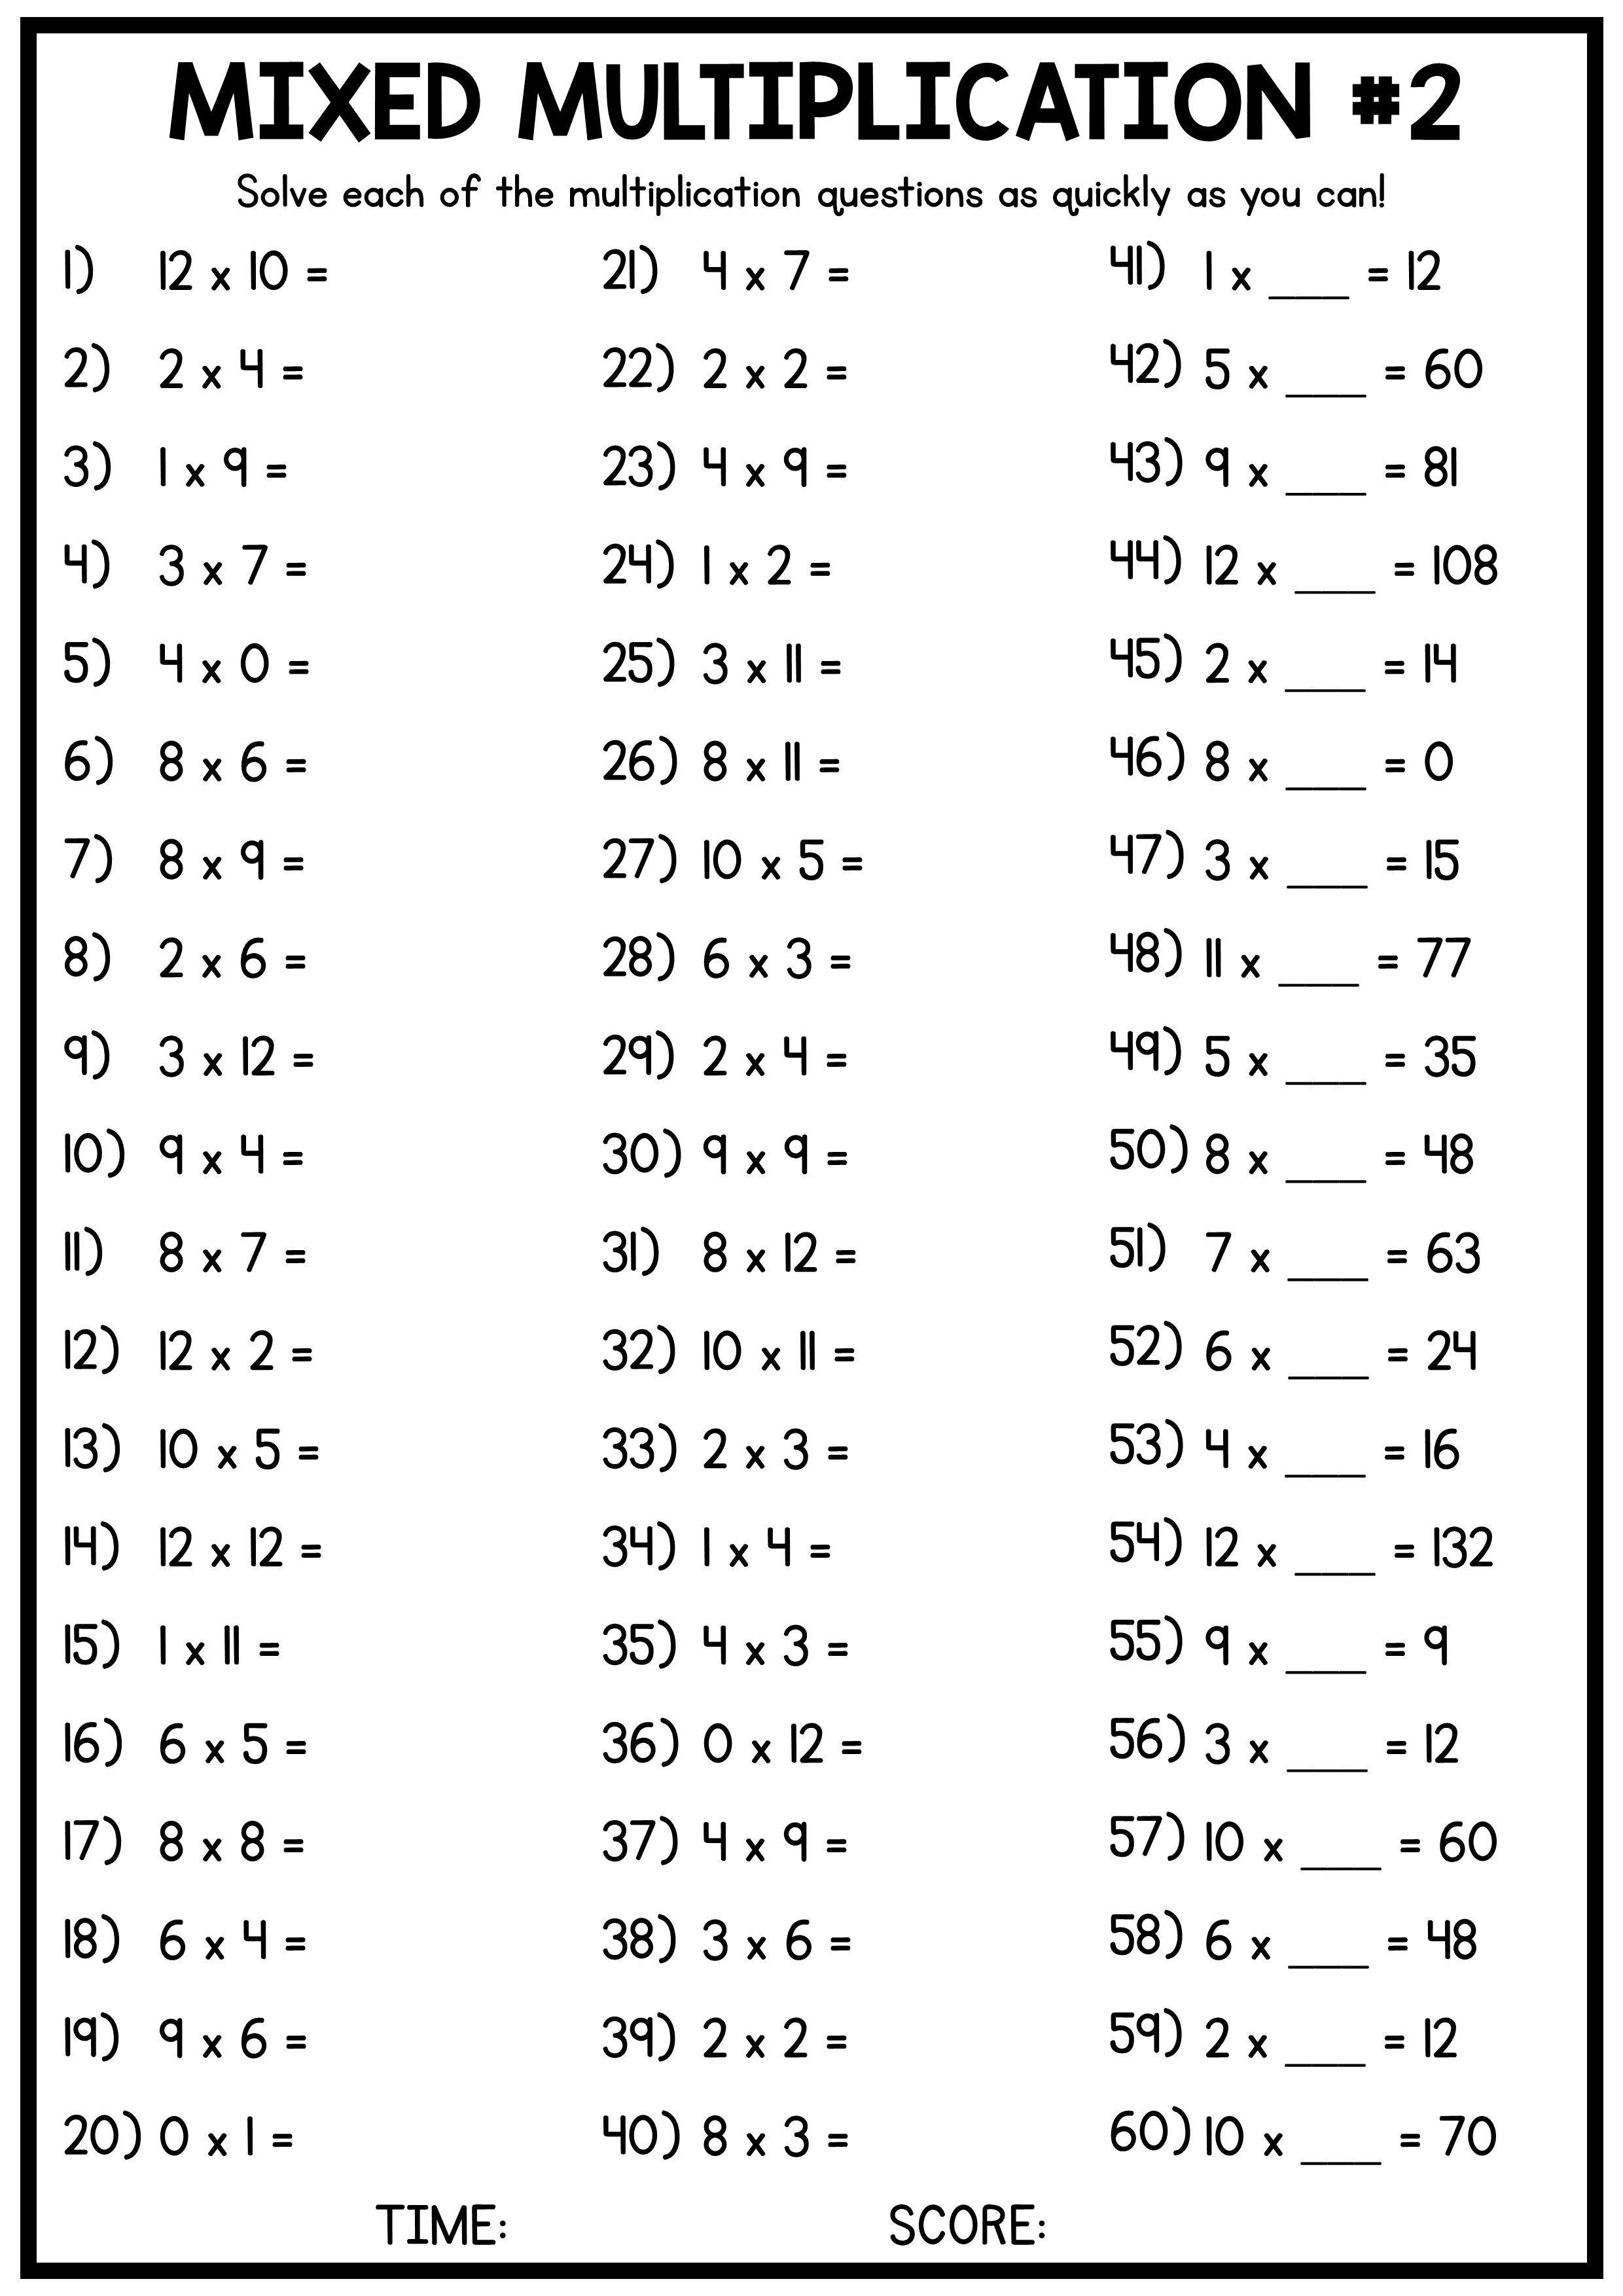 Mixed Multiplication Times Table Worksheets 4 Free Worksheets In 2020 Multiplication Worksheets Printable Math Worksheets Free Printable Math Worksheets